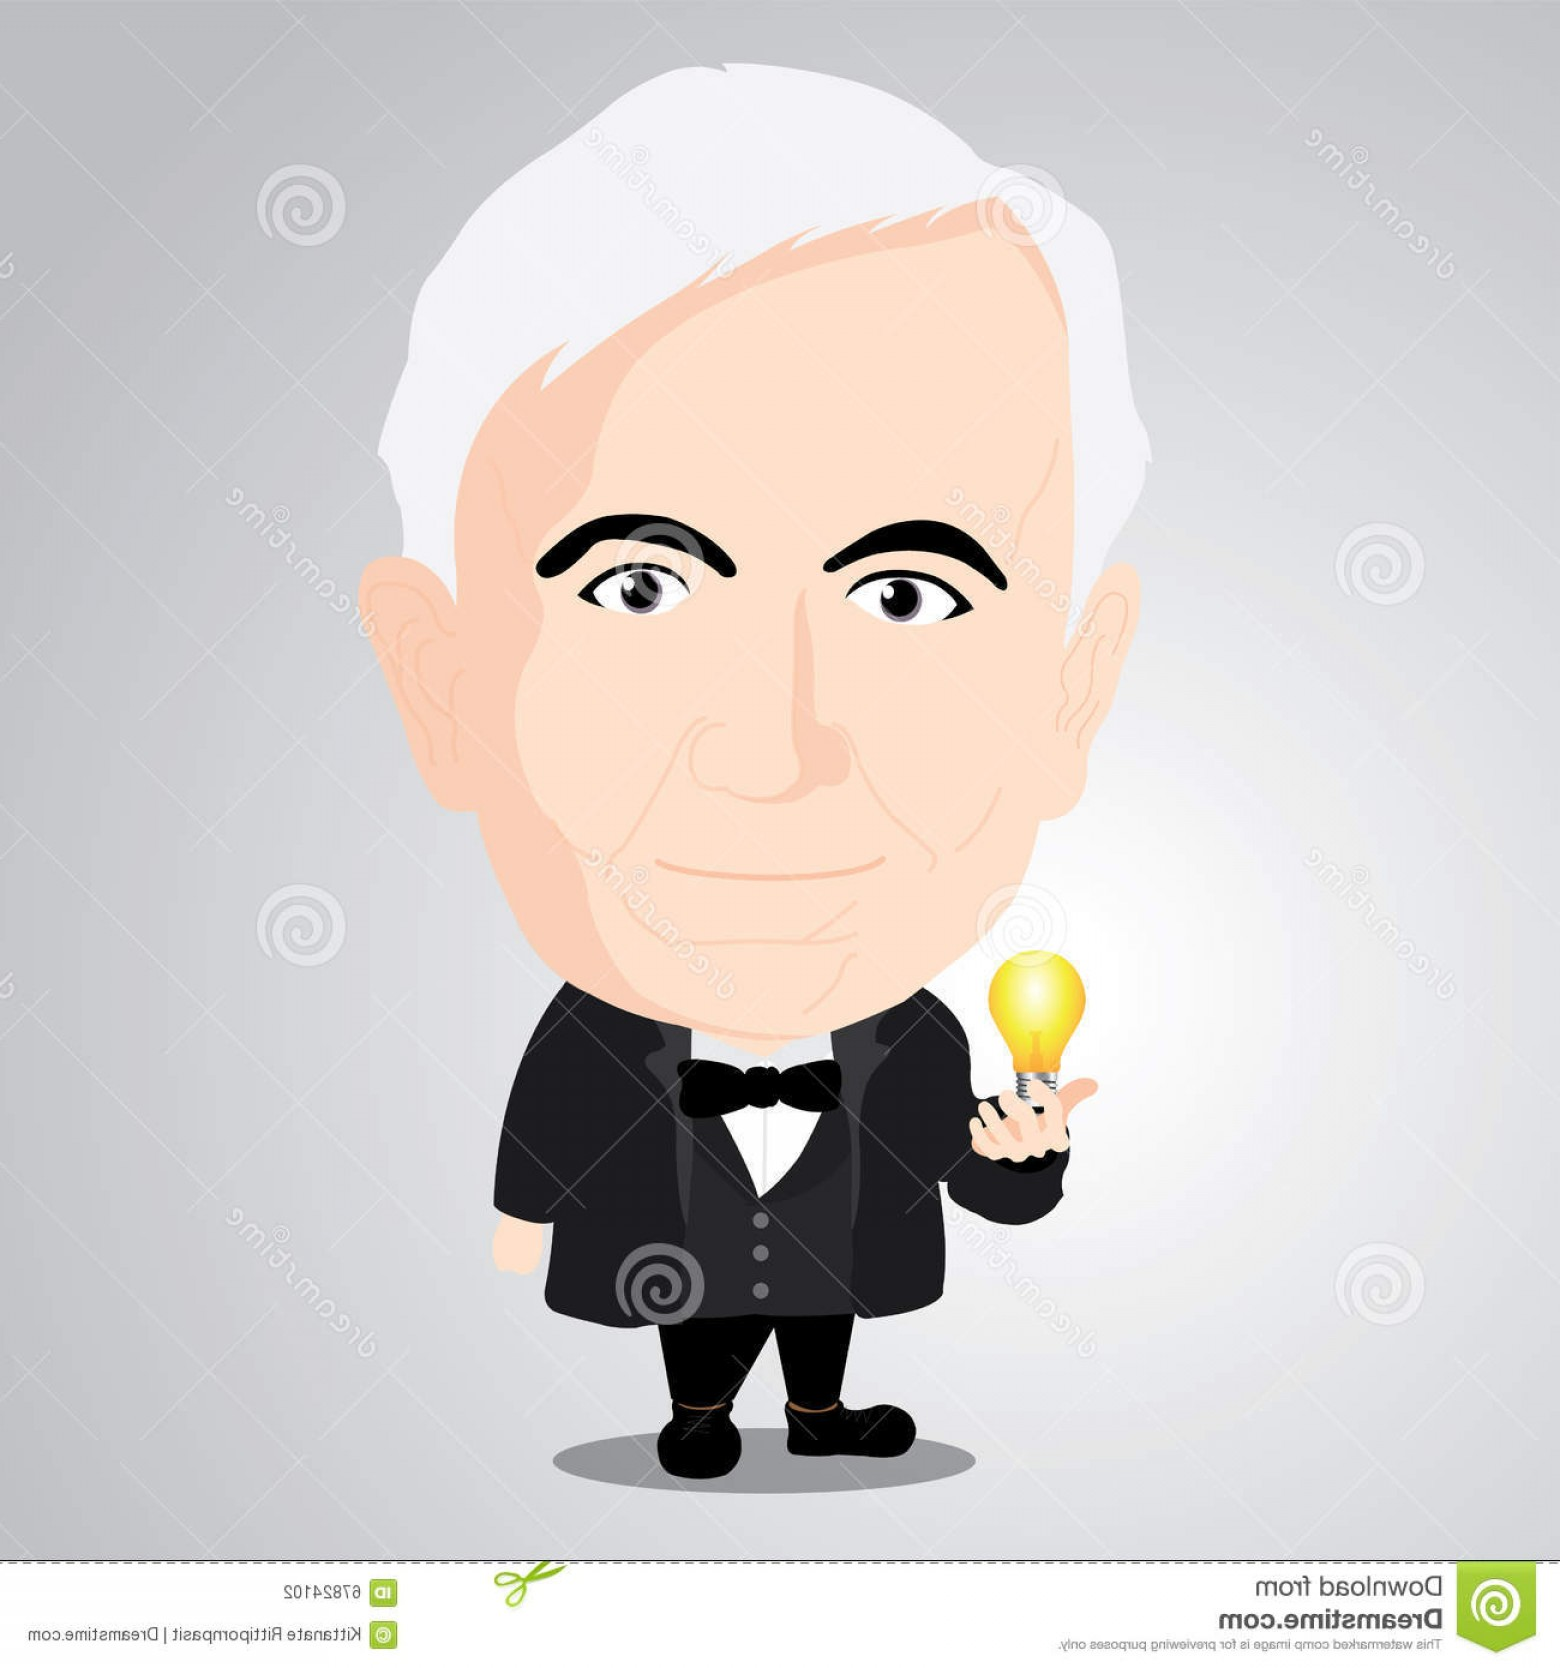 Thomas And Thomas Vector: Editorial Photography Vector Illustration Thomas Alva Edison Cartoon Character Illustrator Image